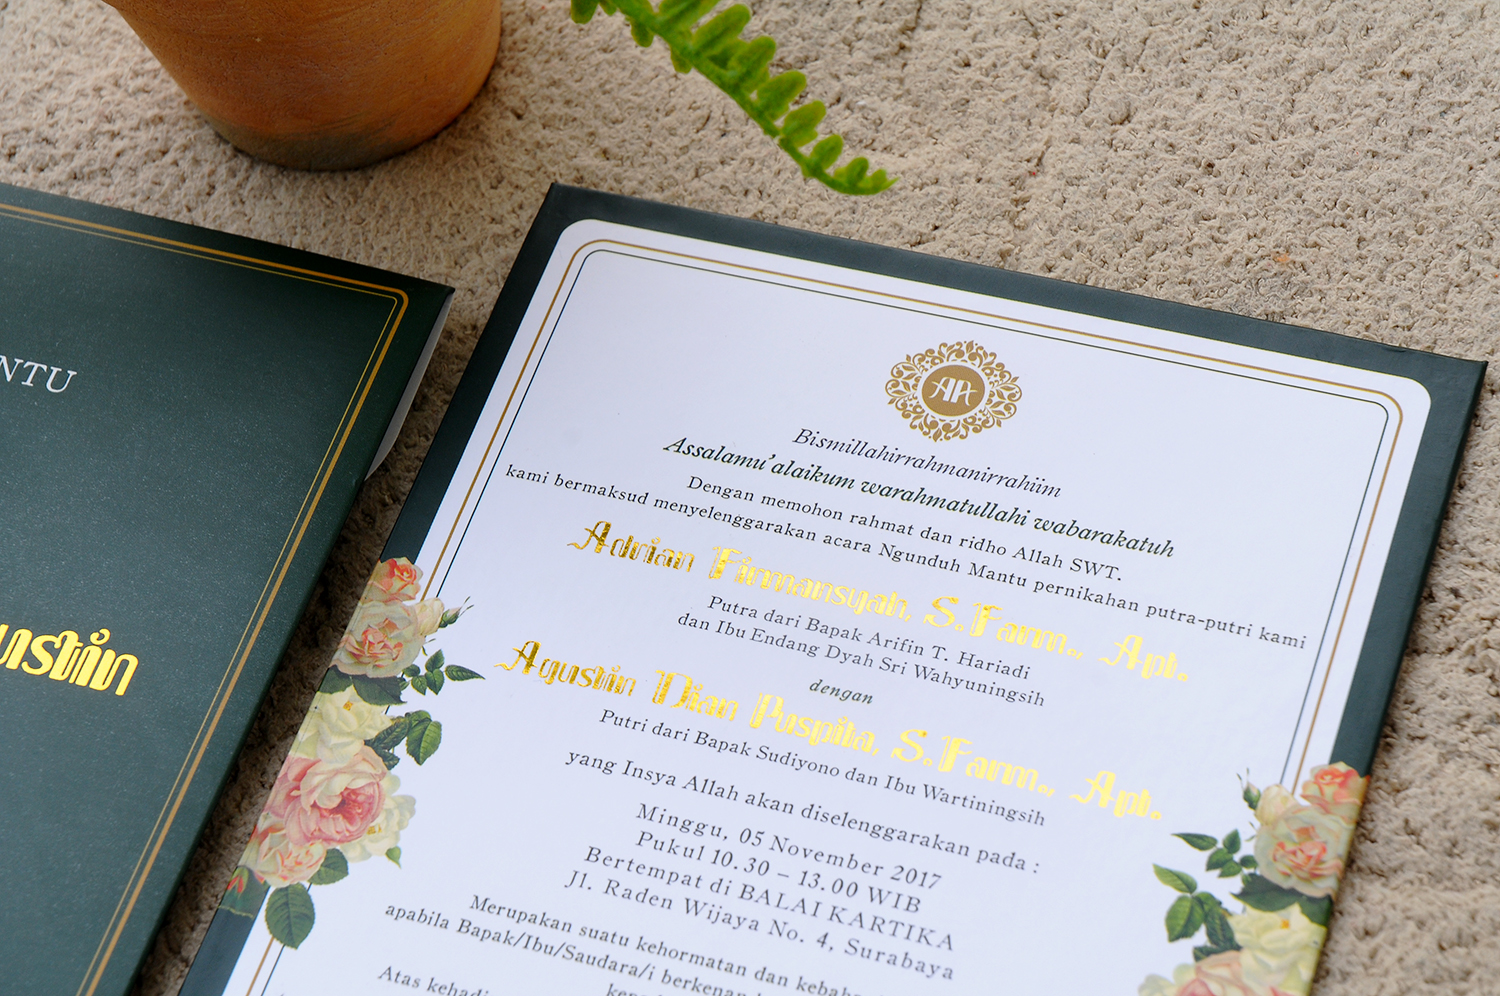 Serat ulem wedding invitations in surabaya bridestory stopboris Gallery